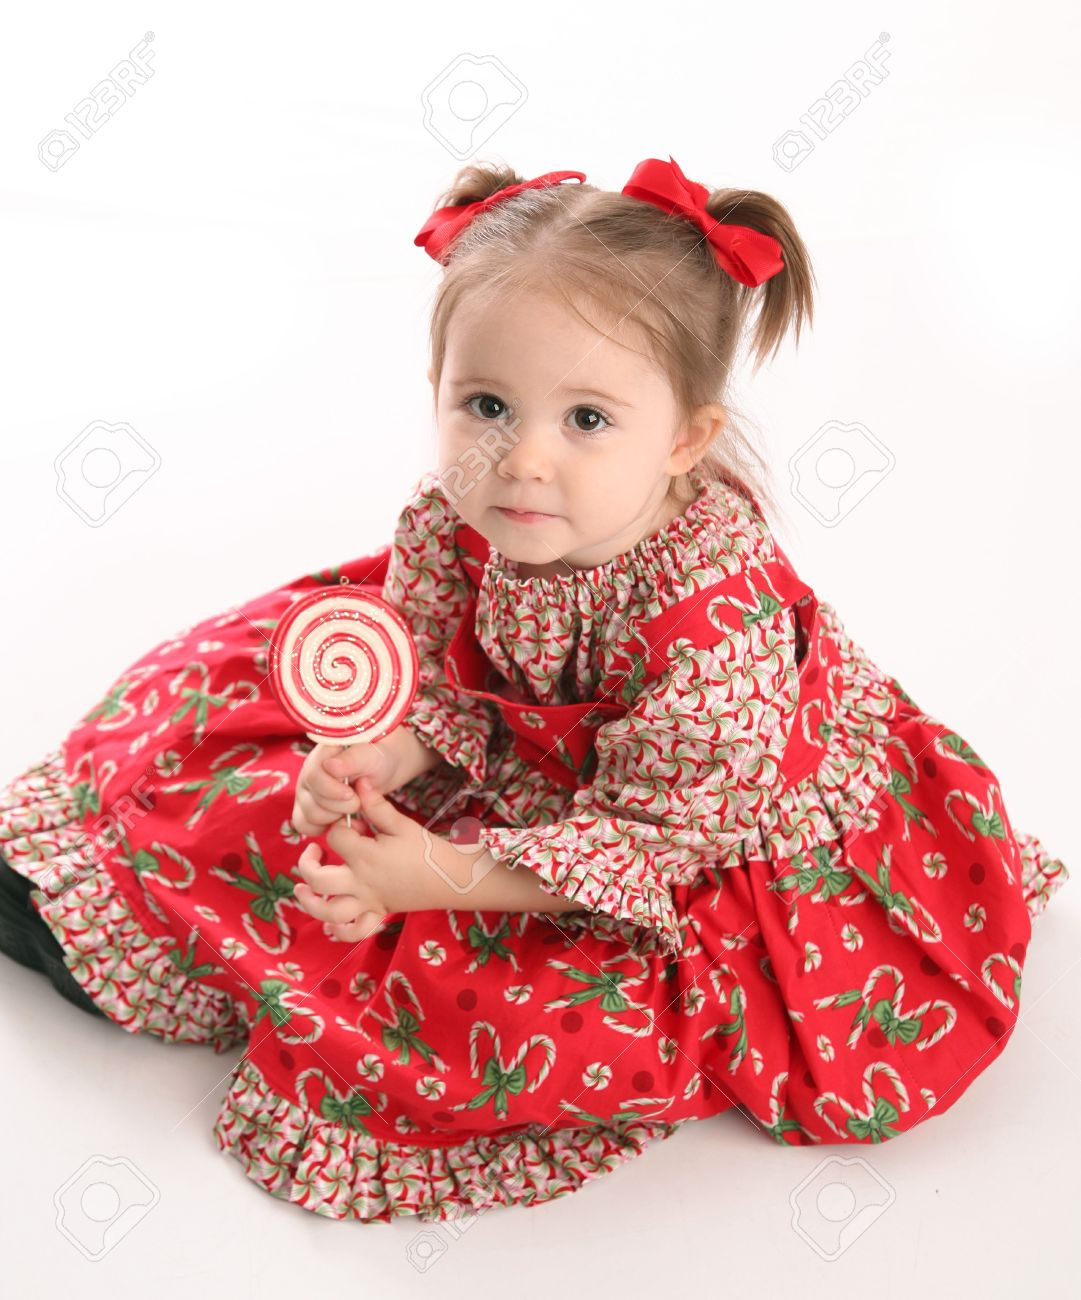 2167ed26d Adorable toddler girl wearing a Christmas holiday outfit posing, isolated  on white Stock Photo -